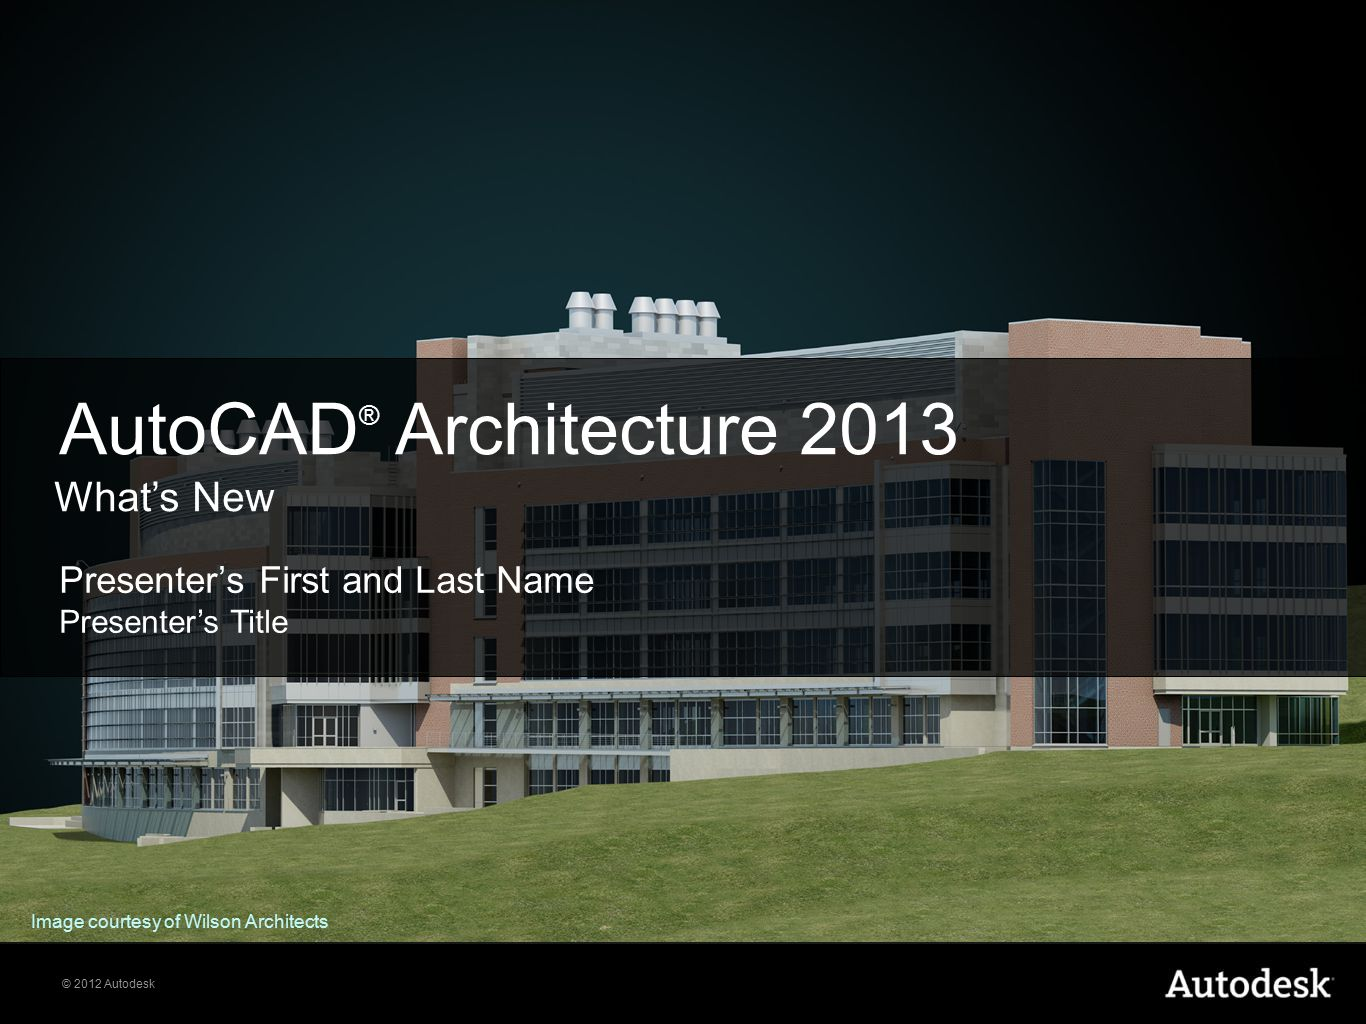 © 2012 Autodesk Presenter's First and Last Name Presenter's Title AutoCAD ® Architecture 2013 What's New Image courtesy of Wilson Architects